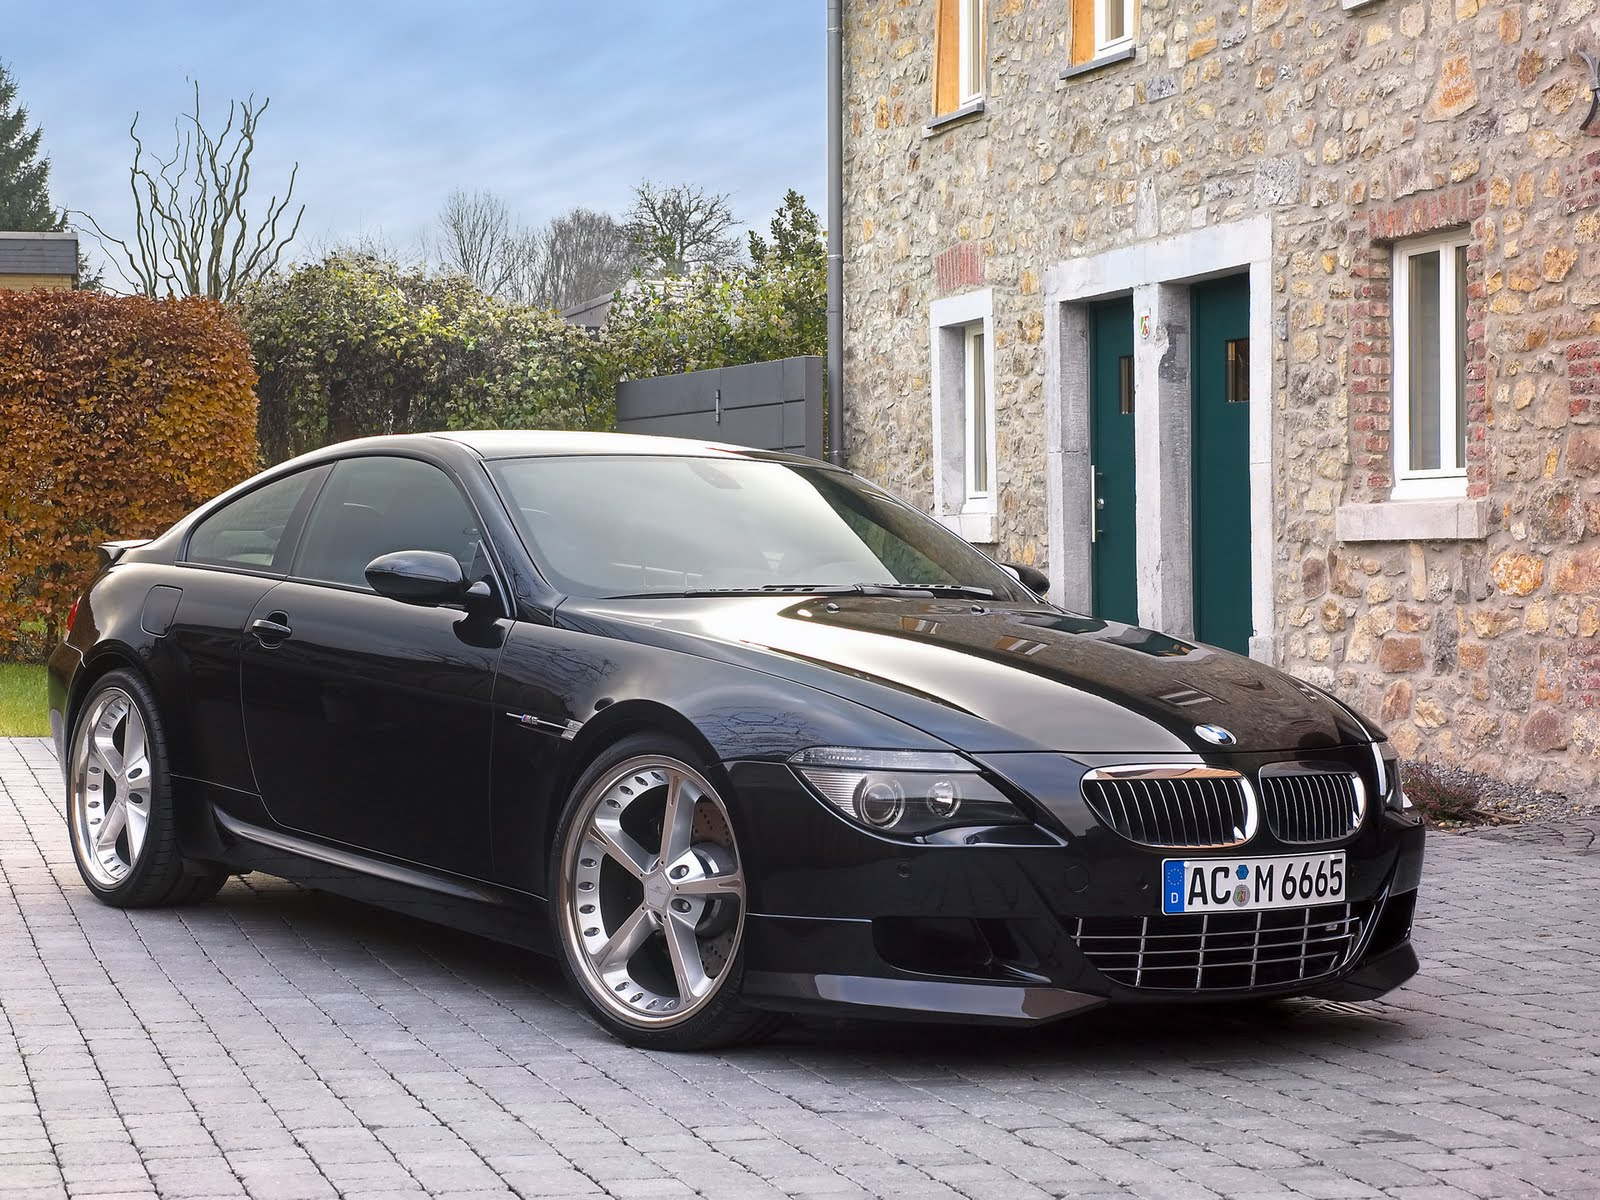 Black Bmw Car Wallpaper Cars Wallpapers And Pictures Car Images Car